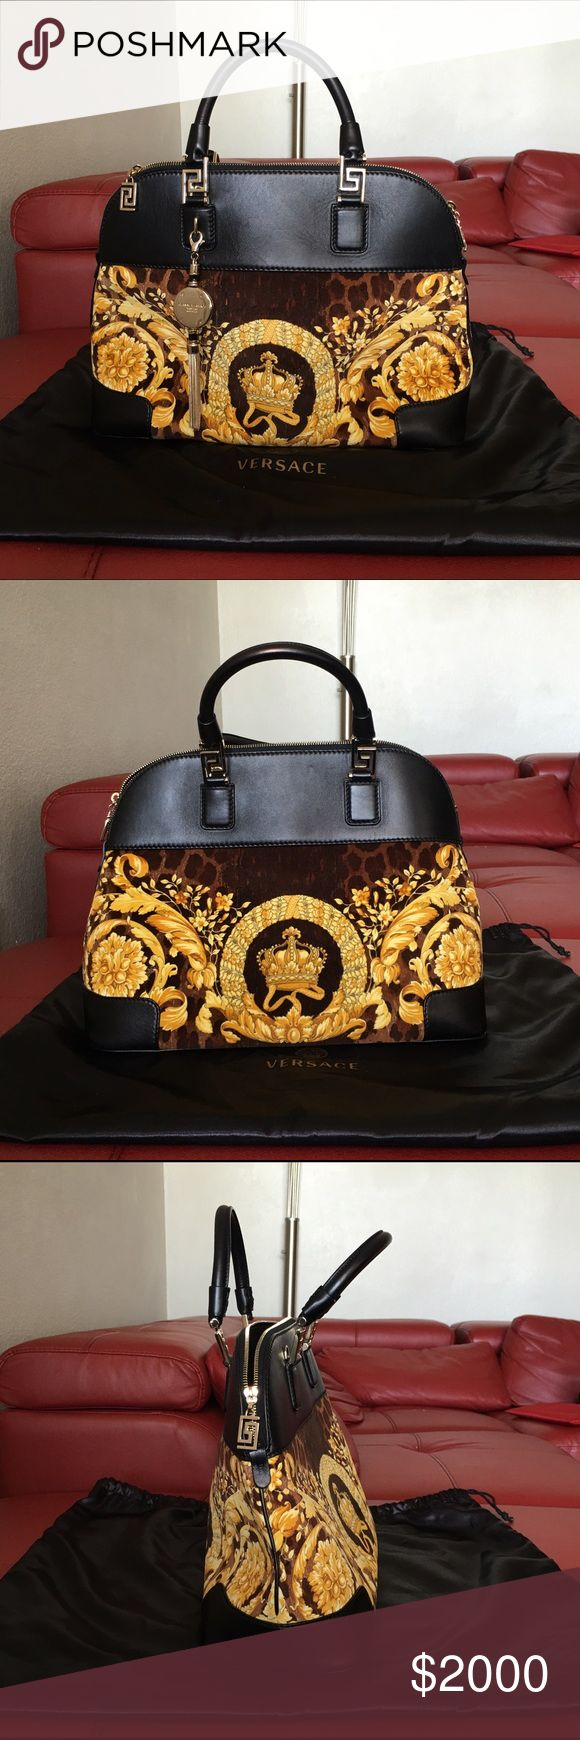 """Versace """"Vanitas"""" Athena velvet handbag - Like New This stunning handbag comes with a smooth leather upper,  a gold baroque print velvet bottom, a leather base, and gold hardware. Worn about five times, this bag is practically in new condition with no signs of wear. A definite standout piece in anyone's closet. Versace Bags Satchels"""